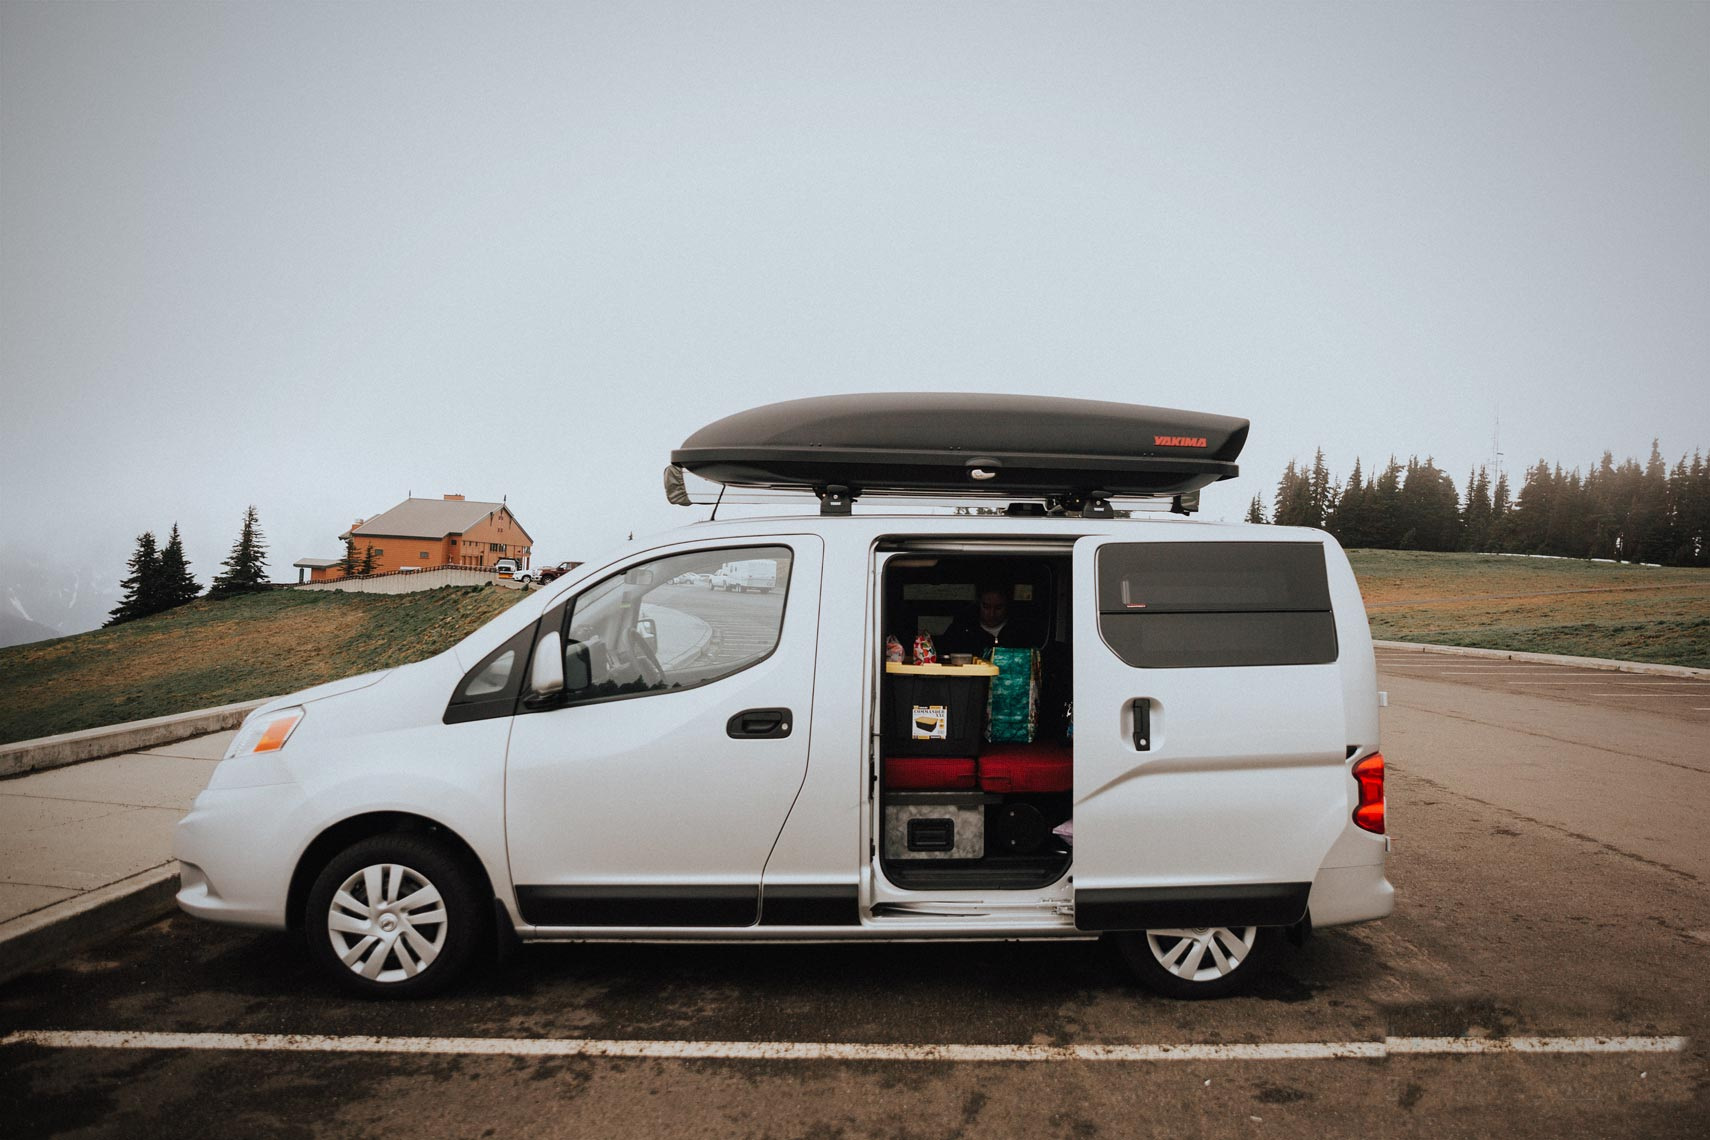 Caravan Outfitters Nissan Nv200 Free Bird Camper Improb